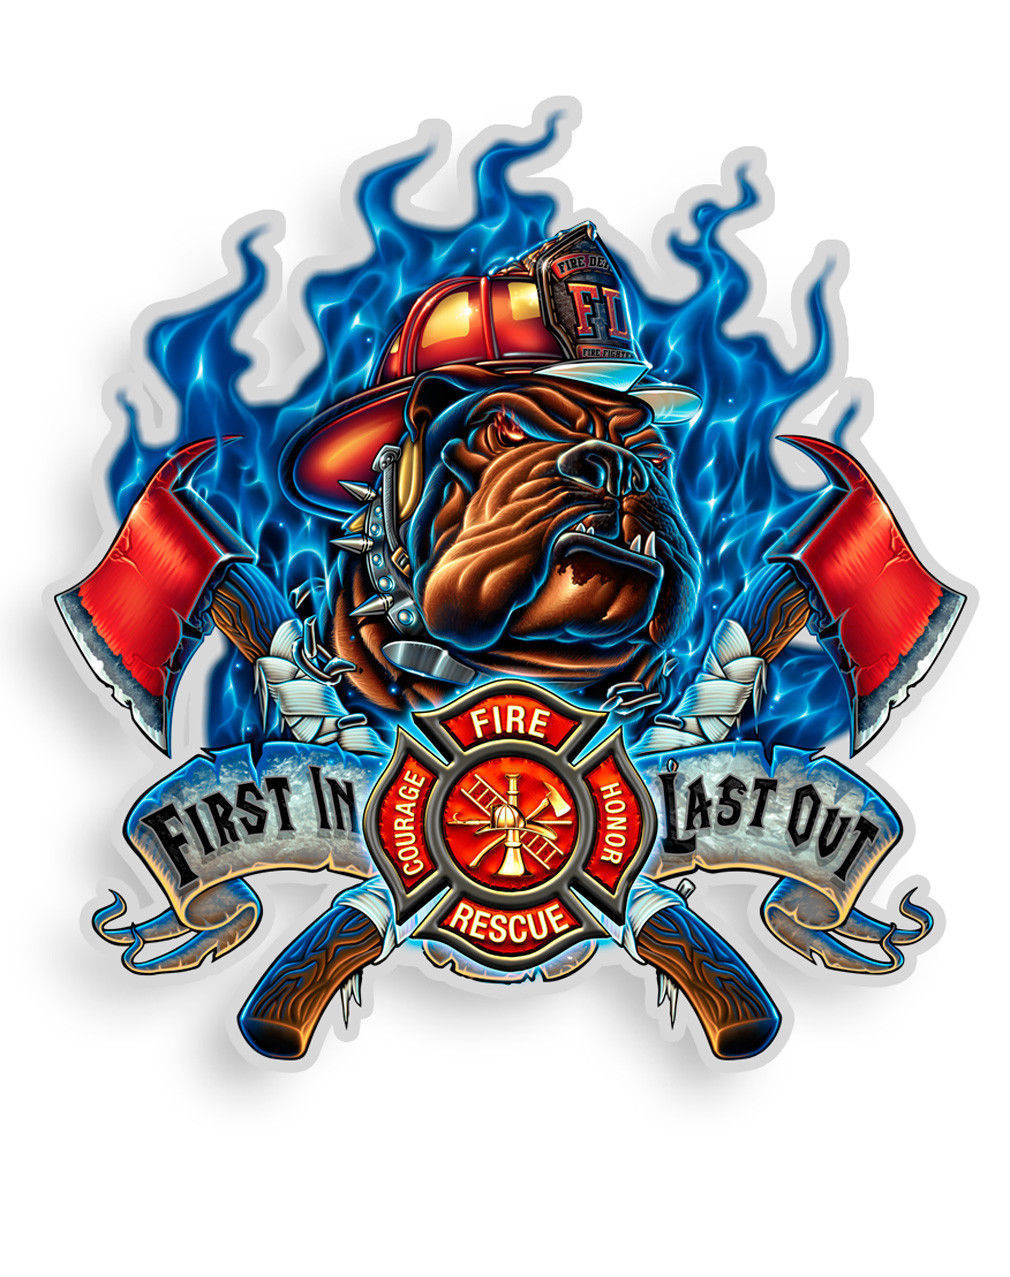 FIREMAN- FIRST IN LAST OUT WITH FIREDOG- 3M WINDOW DECAL...HIGH QUALITY--AWESOME - $10.99 - $25.99